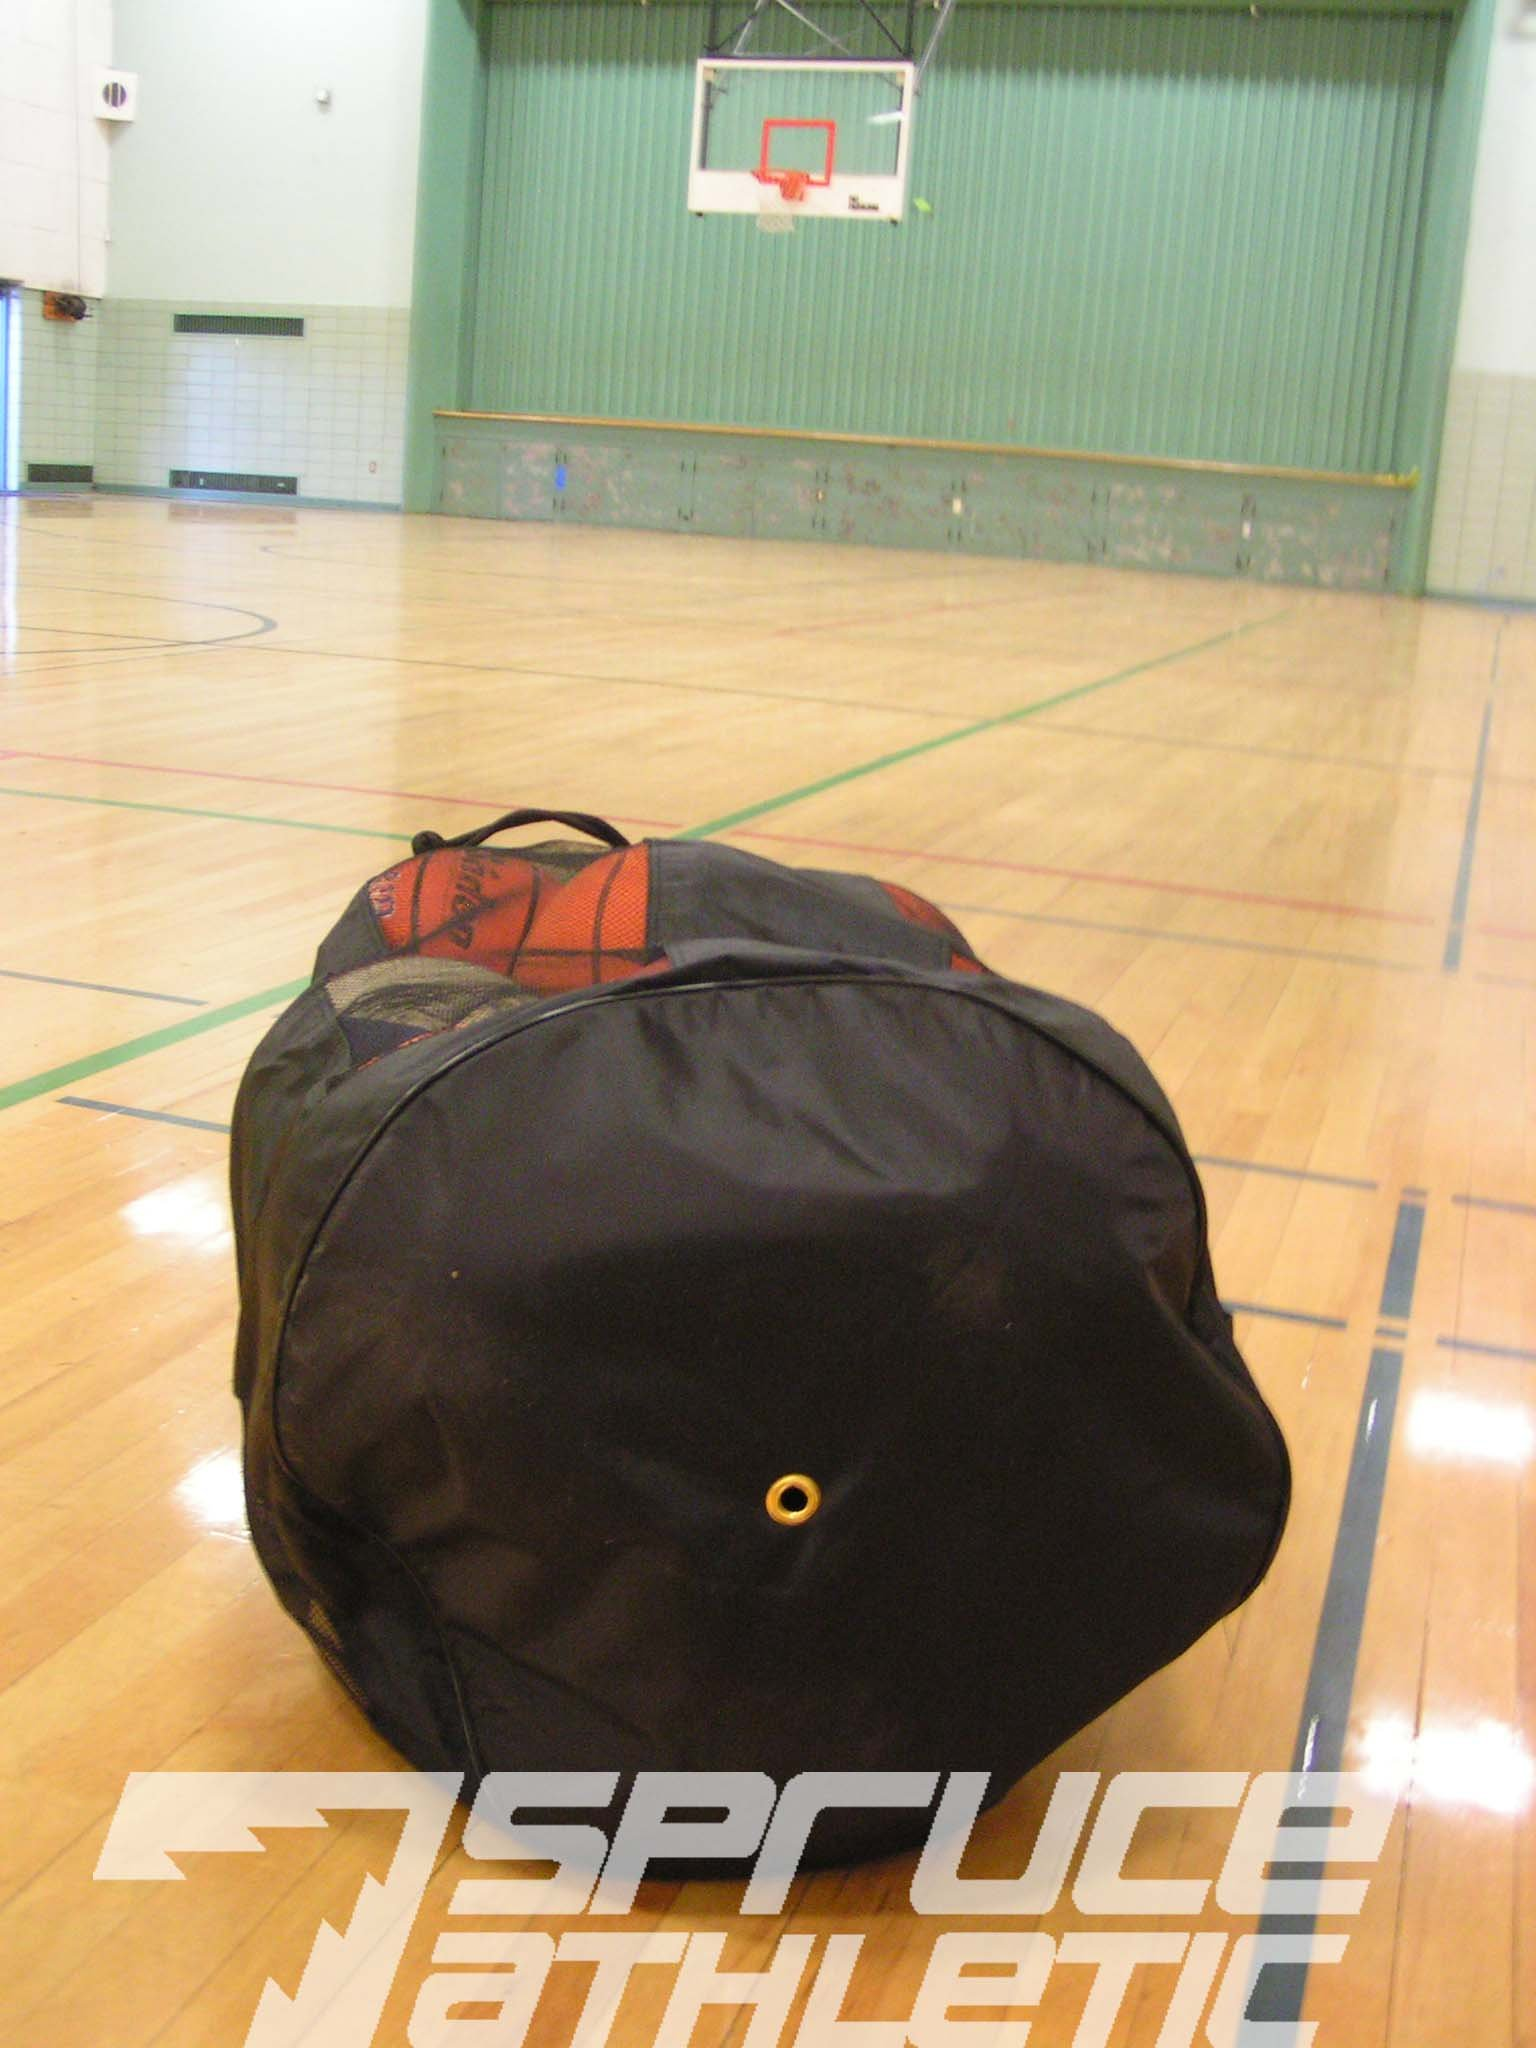 Spruce Athletic X-Large Heavy Duty Ball Bag (Holds 18 Soccer Balls or 15 Youth Basketballs) by Spruce Athletic (Image #5)